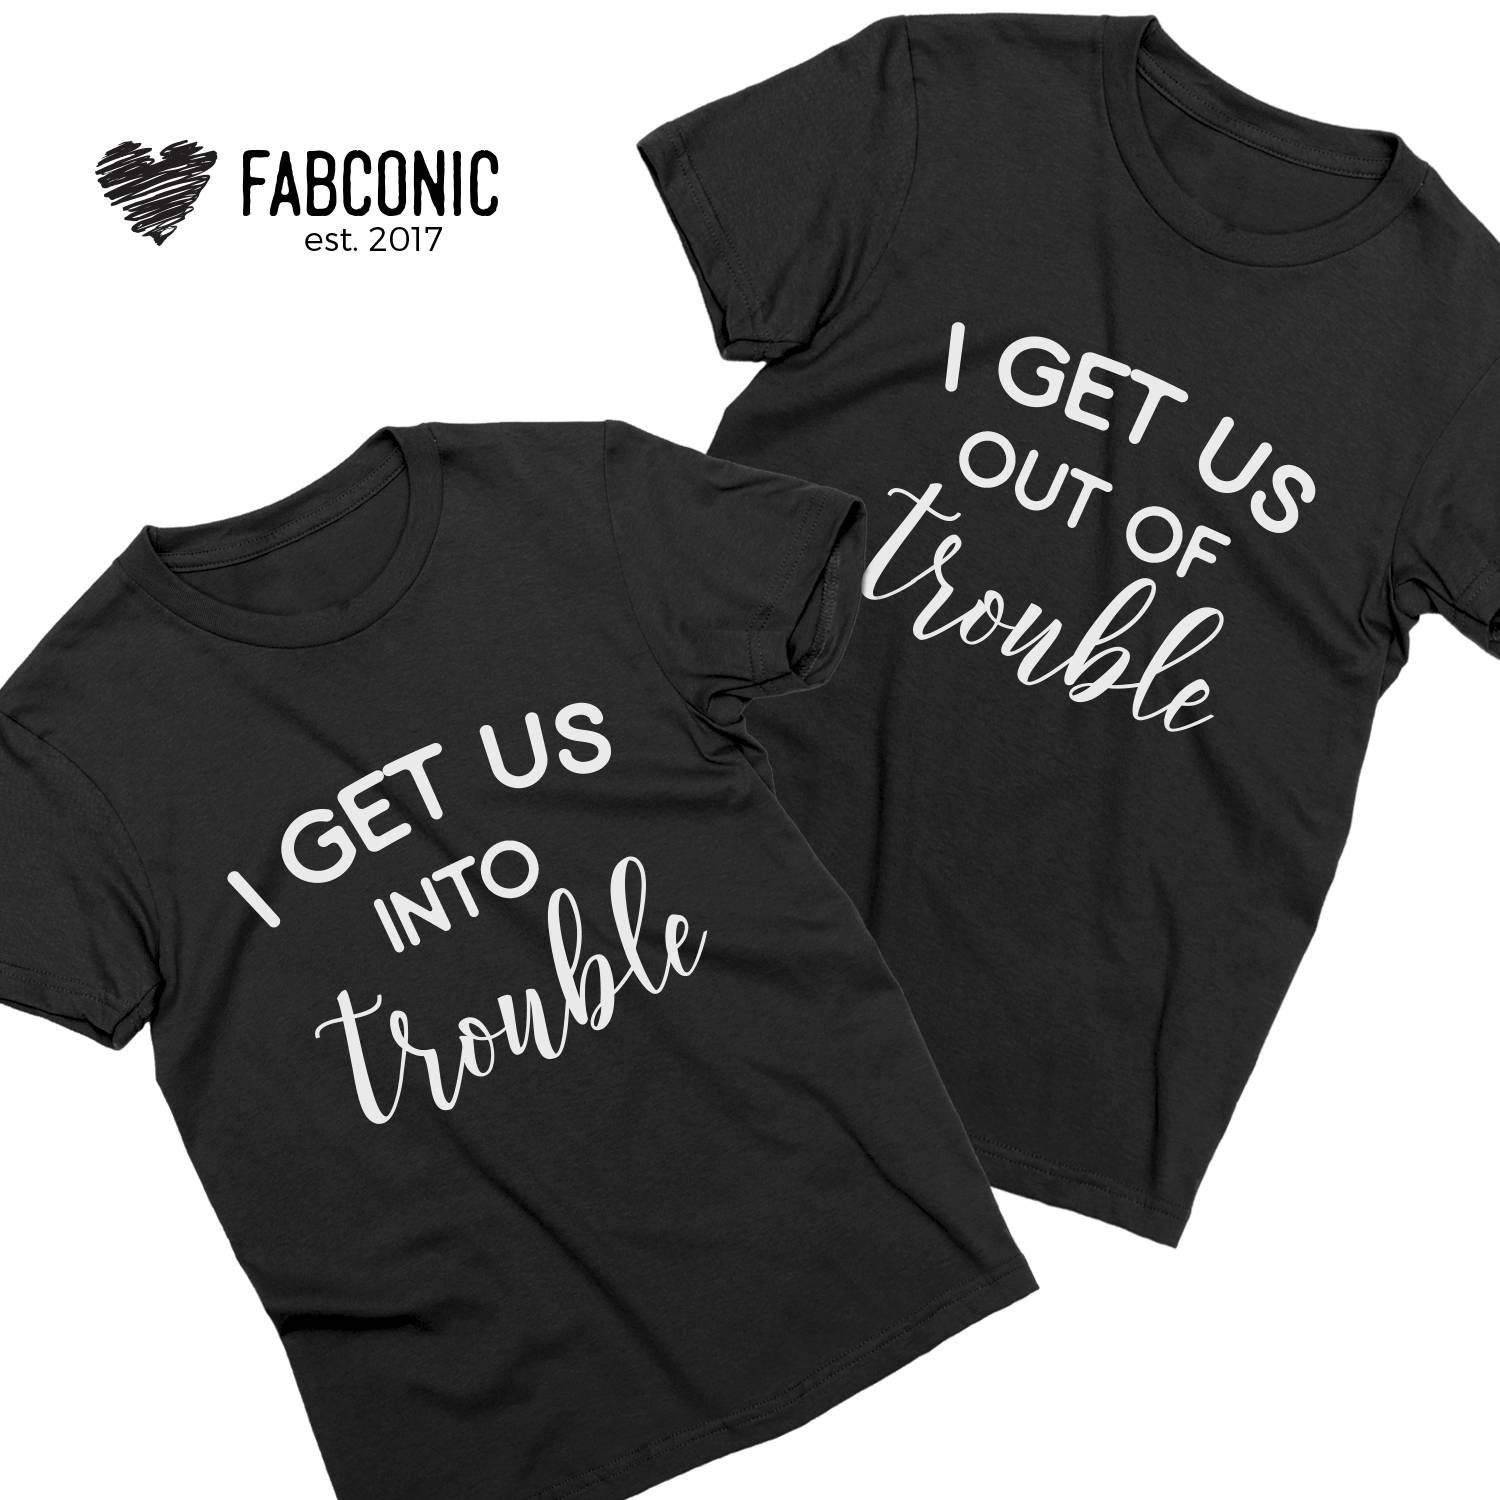 I Get Us Into//Out Of Trouble Kids T-shirt Funny Matching Friends Sibling Baby